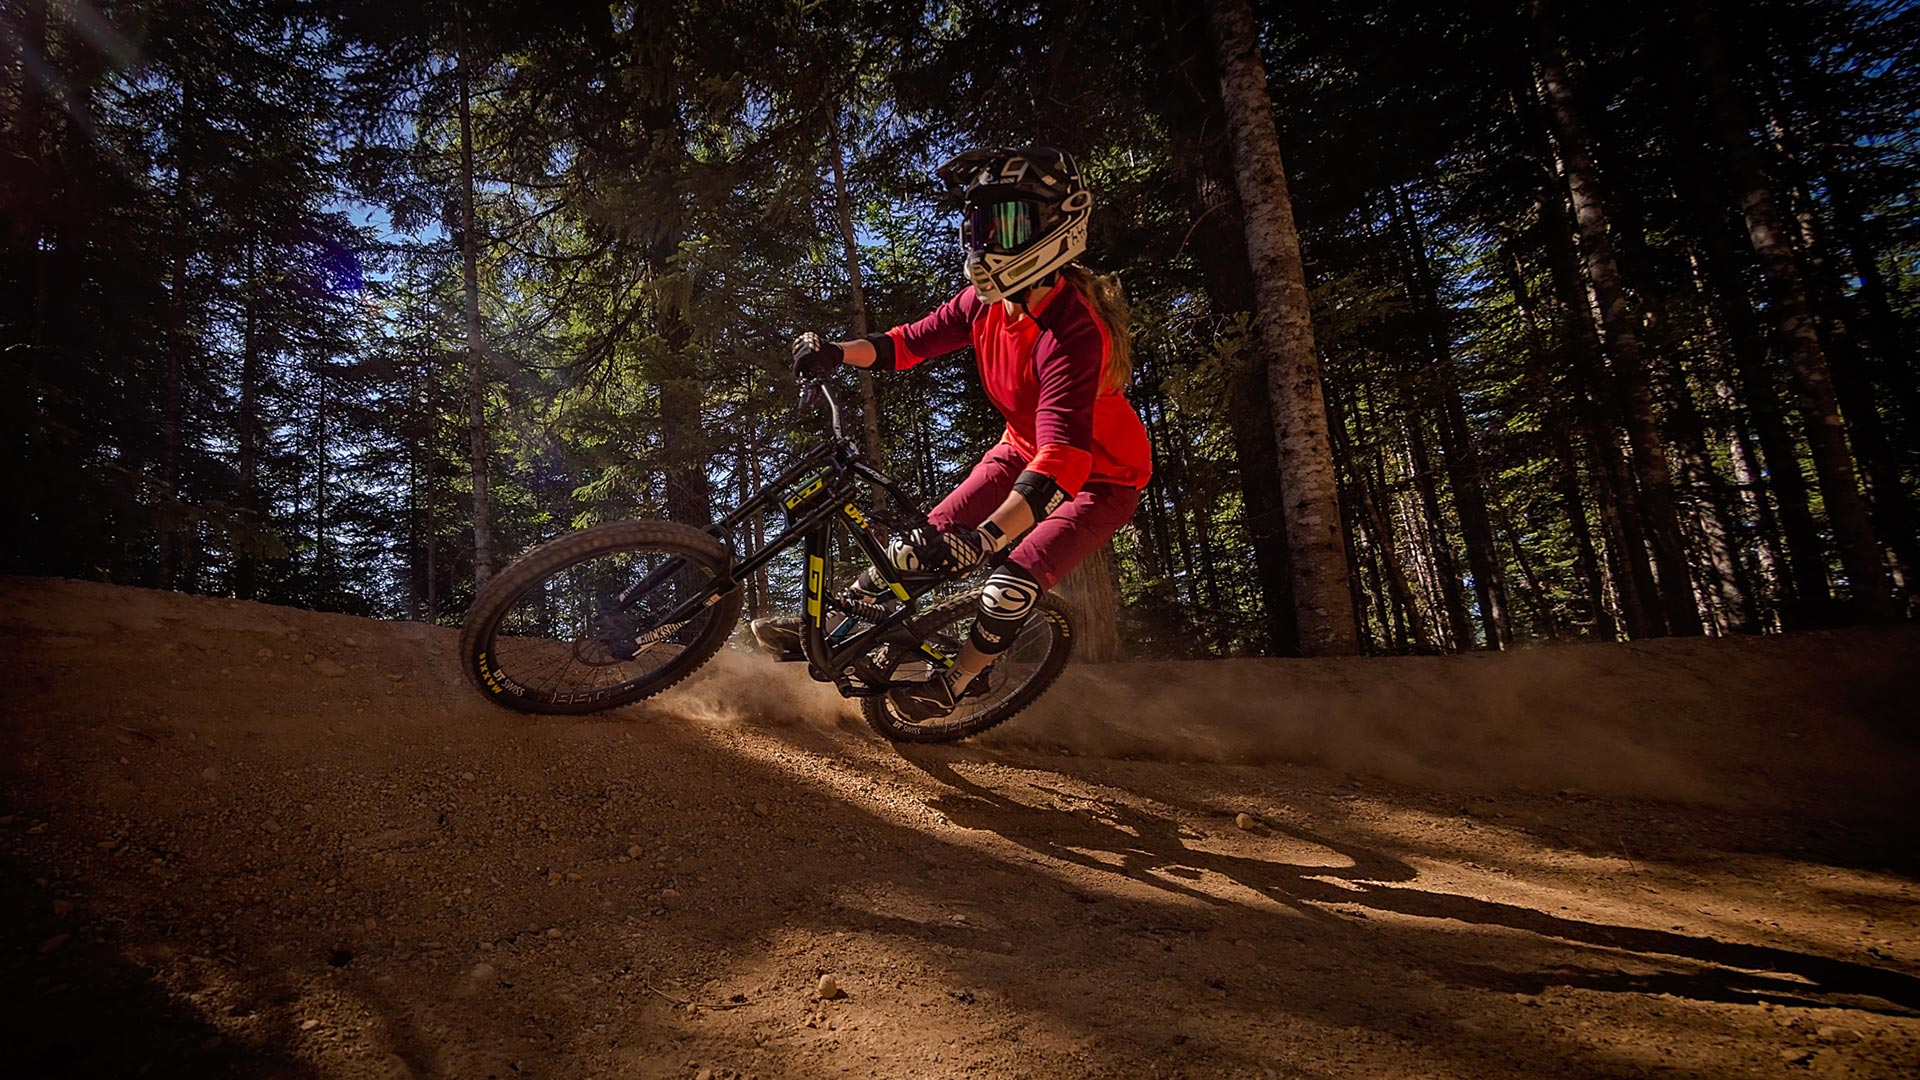 whistler mountain bike part Seasonal hours of operation for whistler and blackcomb mountains - winter/summer ski lifts, bike park, peak 2 peak gondola sightseeing and guest services.